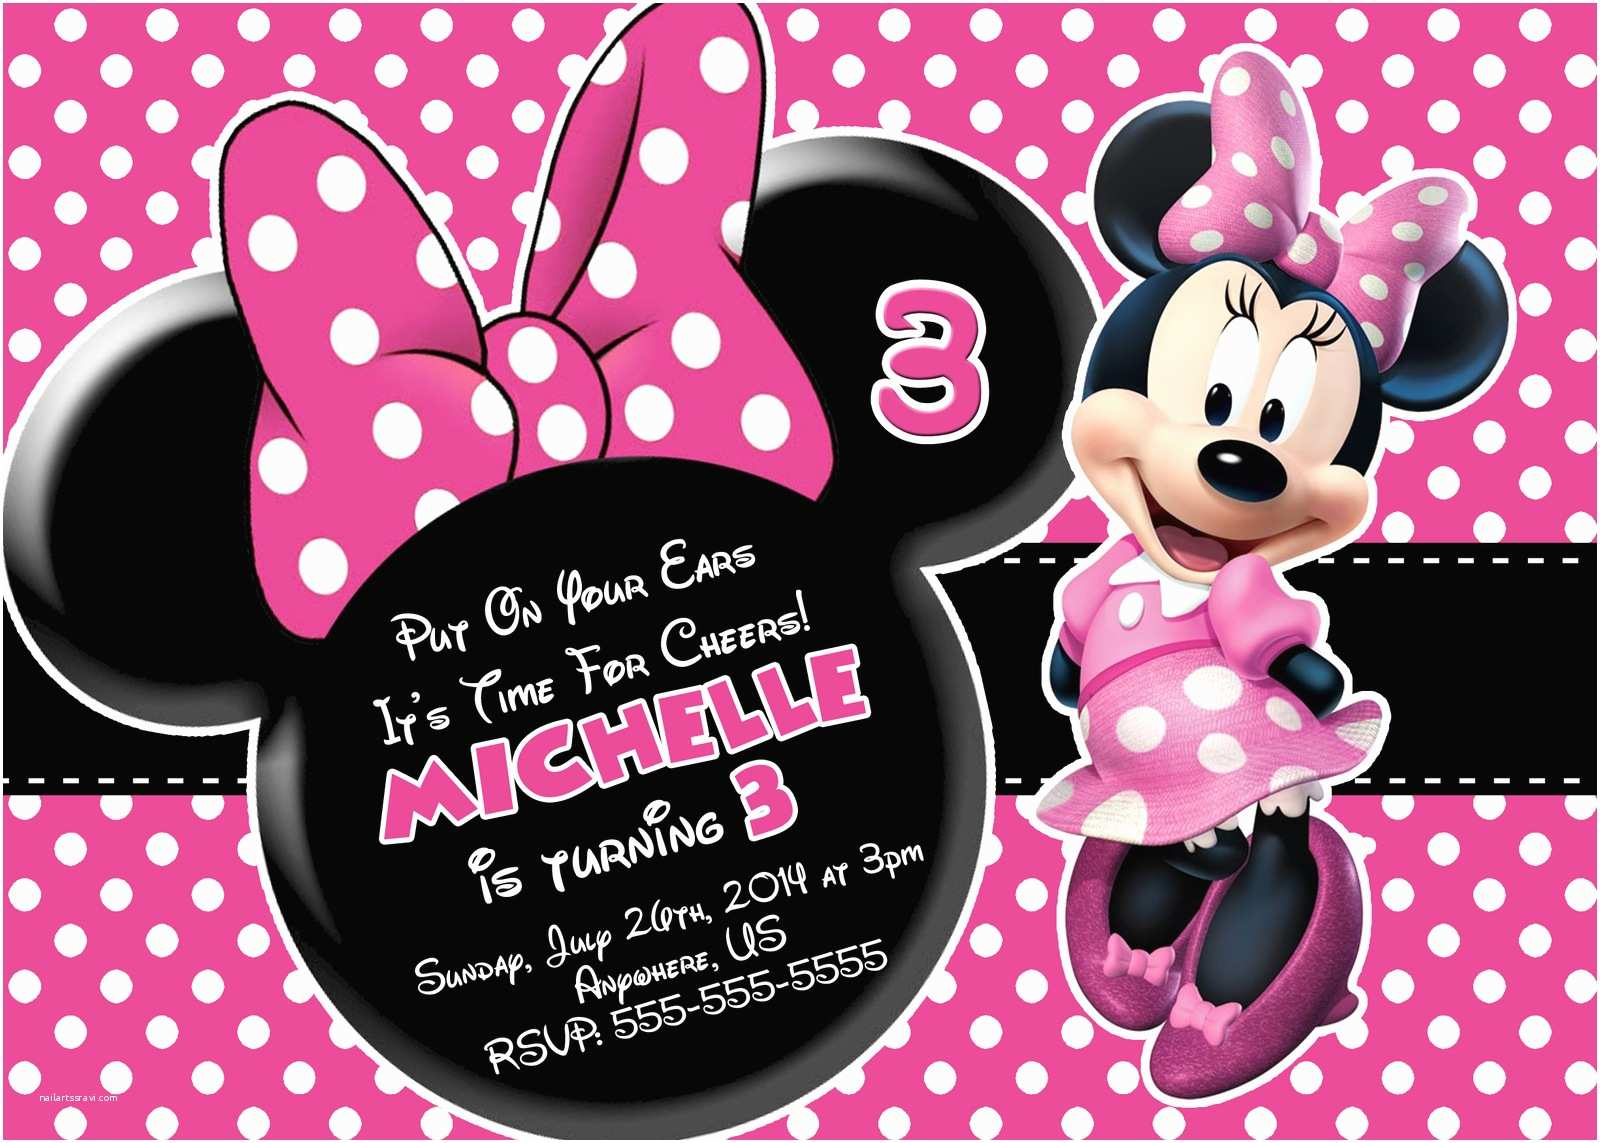 Minnie Mouse Birthday Invitations Personalized Free Minnie Mouse Printable Birthday Invitations